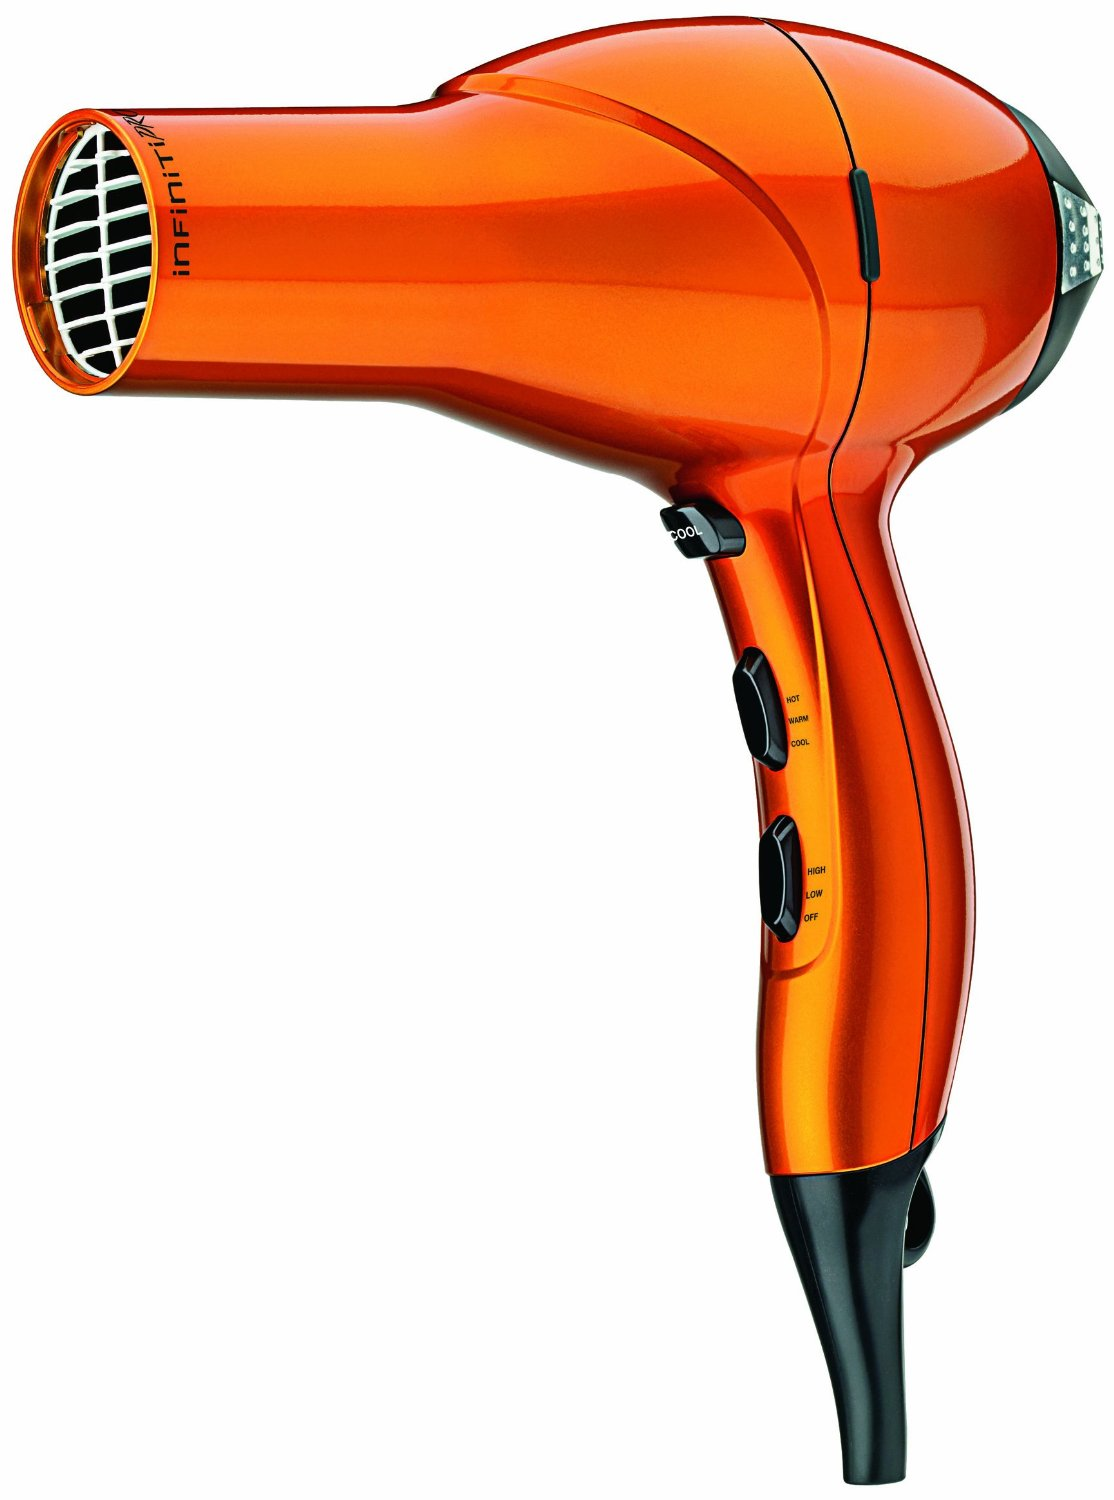 Free Hairdryer Cliparts, Download Free Clip Art, Free Clip.